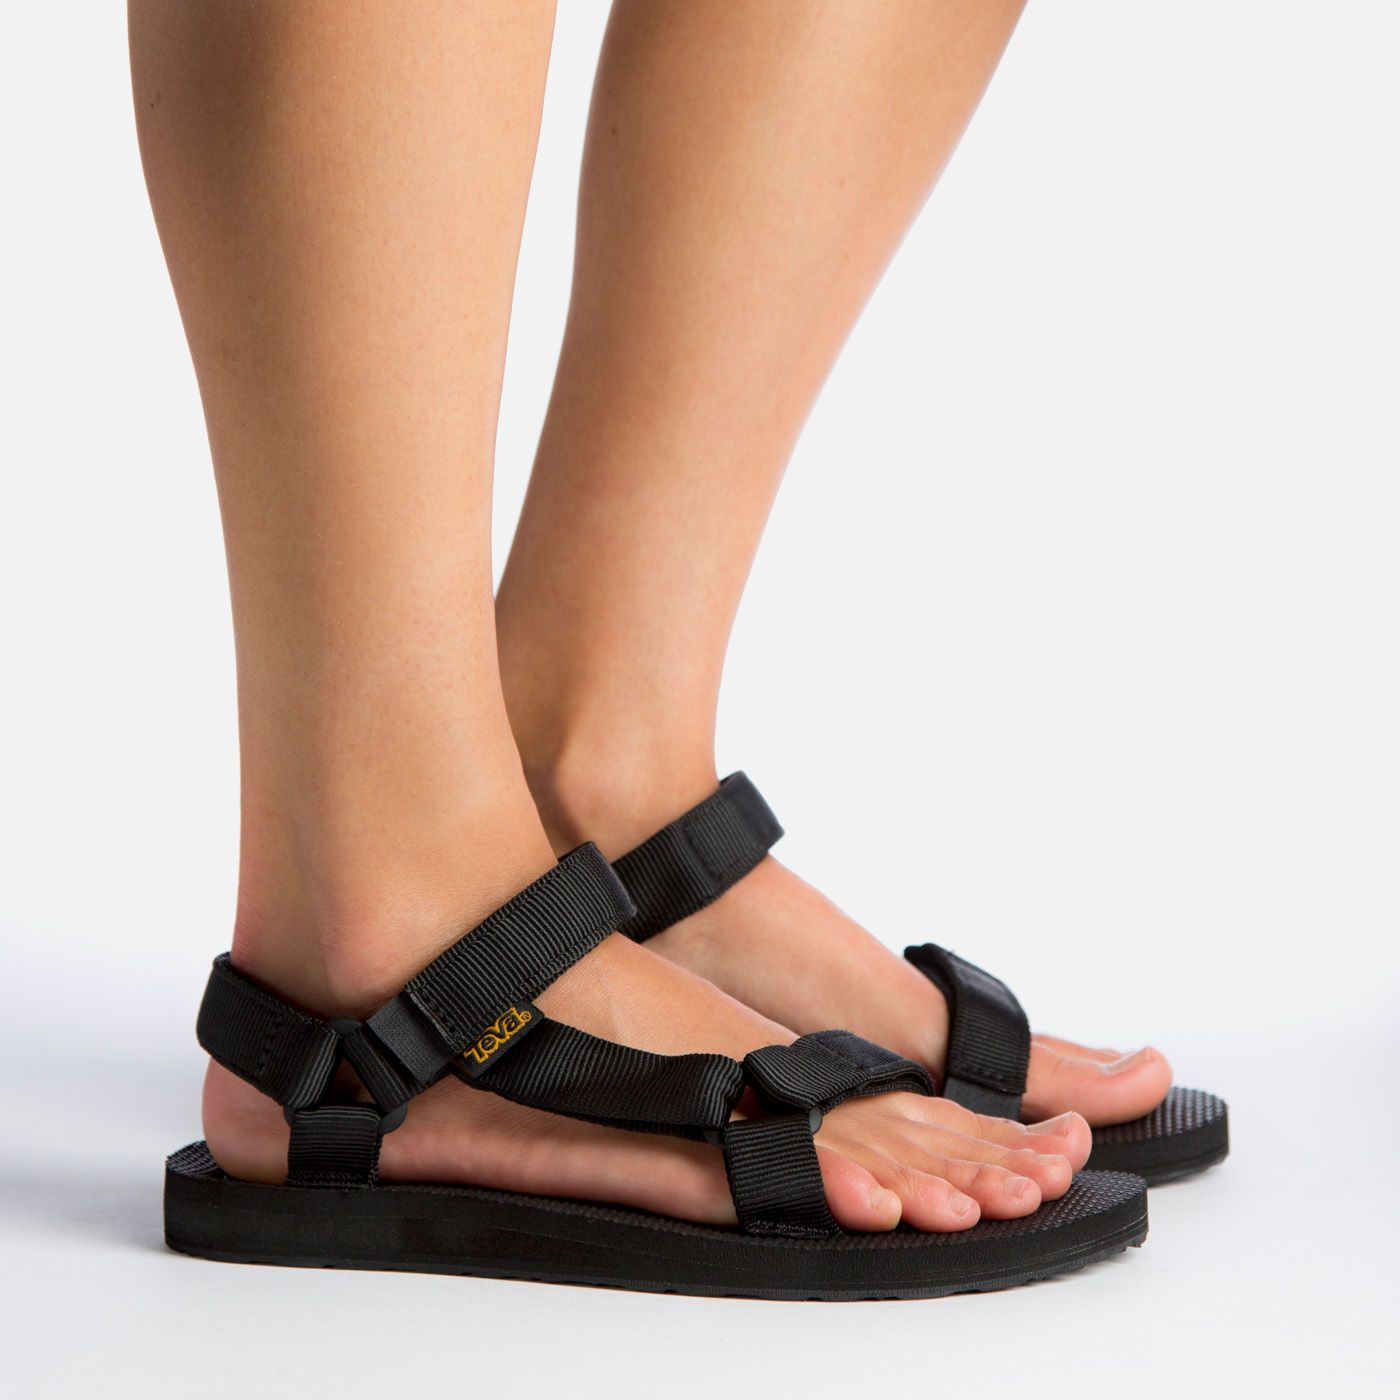 2f72b67d8276e Free Shipping   Free Returns on Authentic Teva® Women s sandals. Shop our  entire Collection of sandals for women including the Original Universal at  Teva. ...